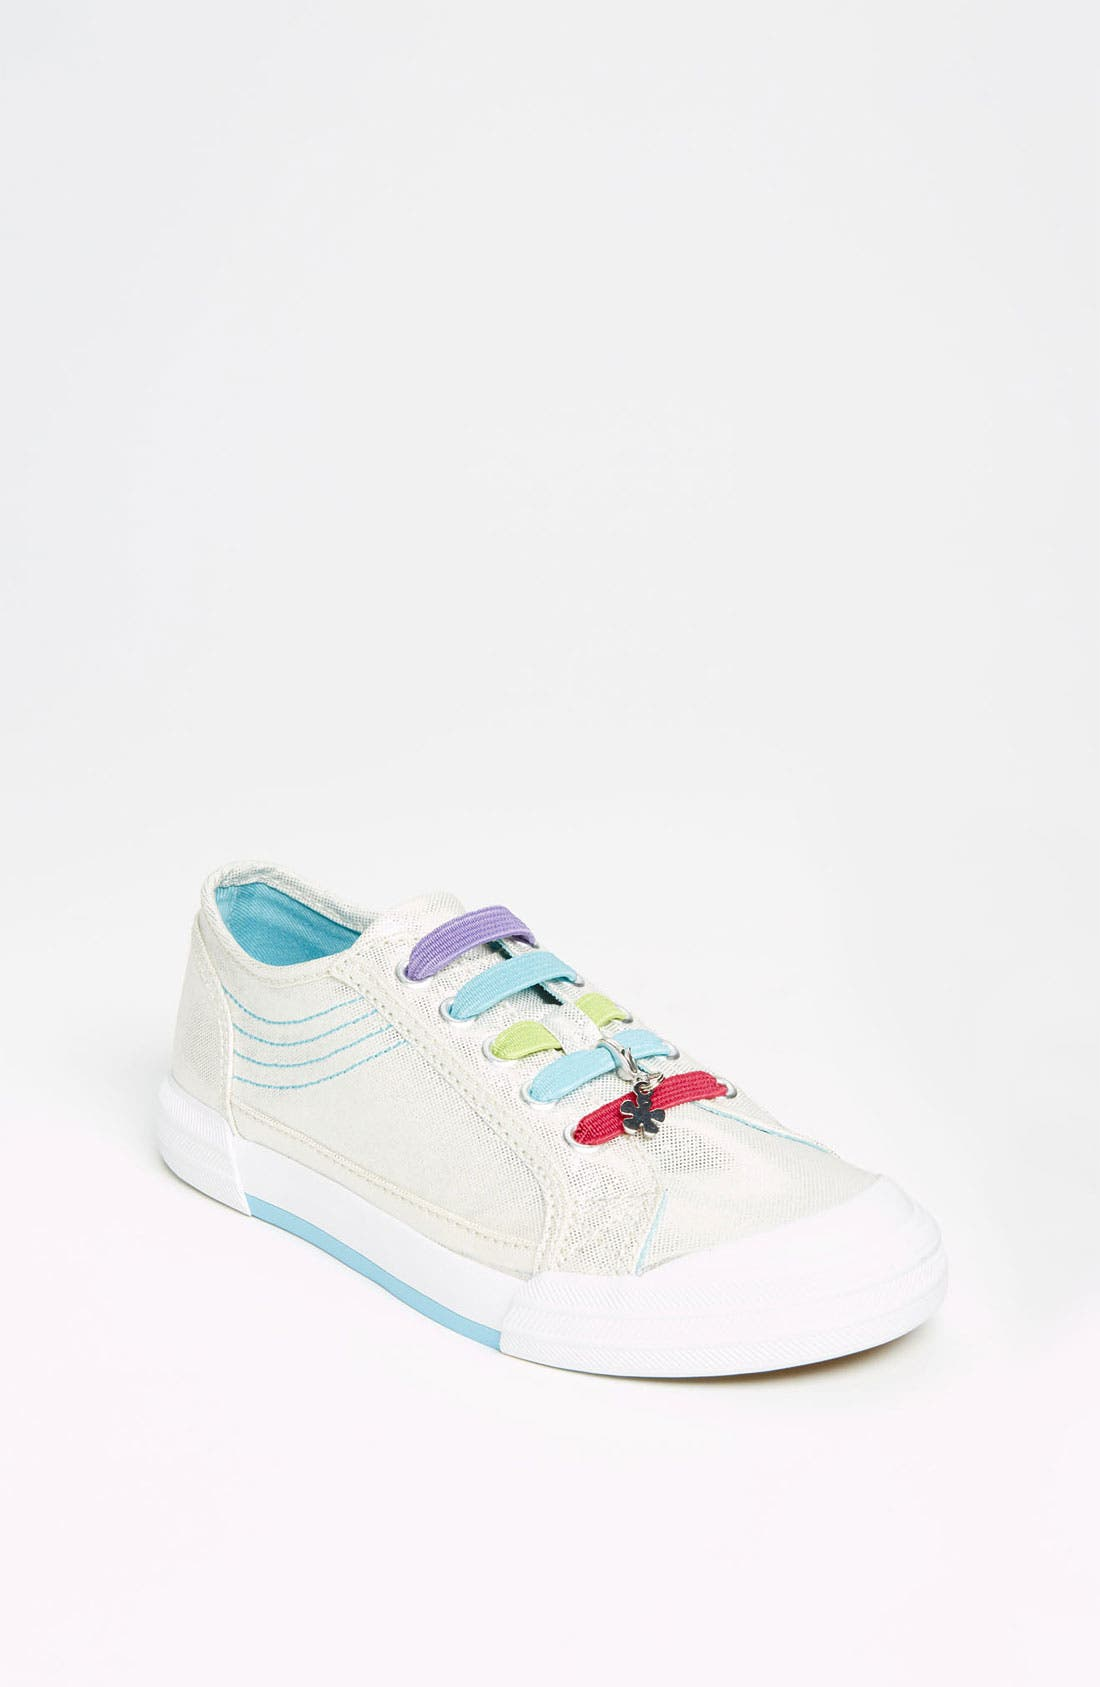 Alternate Image 1 Selected - Keds® 'Carolee' Sneaker (Toddler, Little Kid & Big Kid)